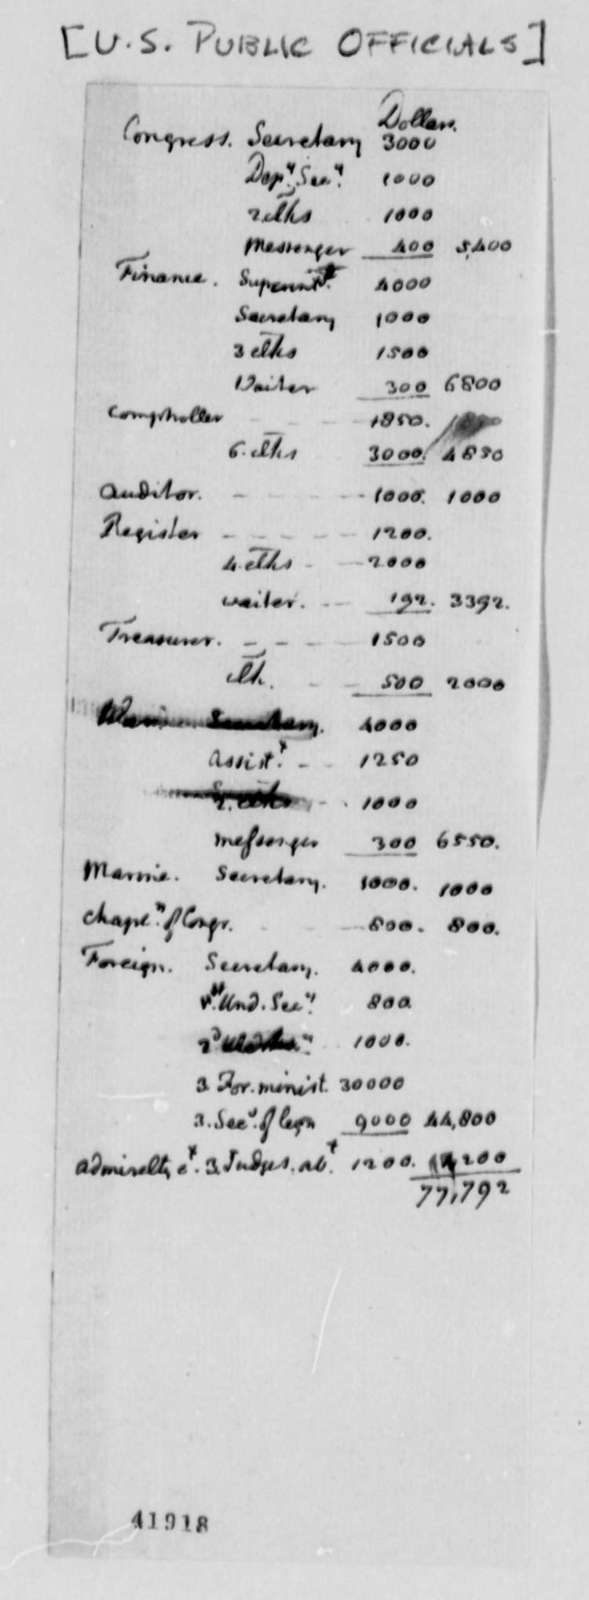 Thomas Jefferson, no date, List of Salaries of Public Officials